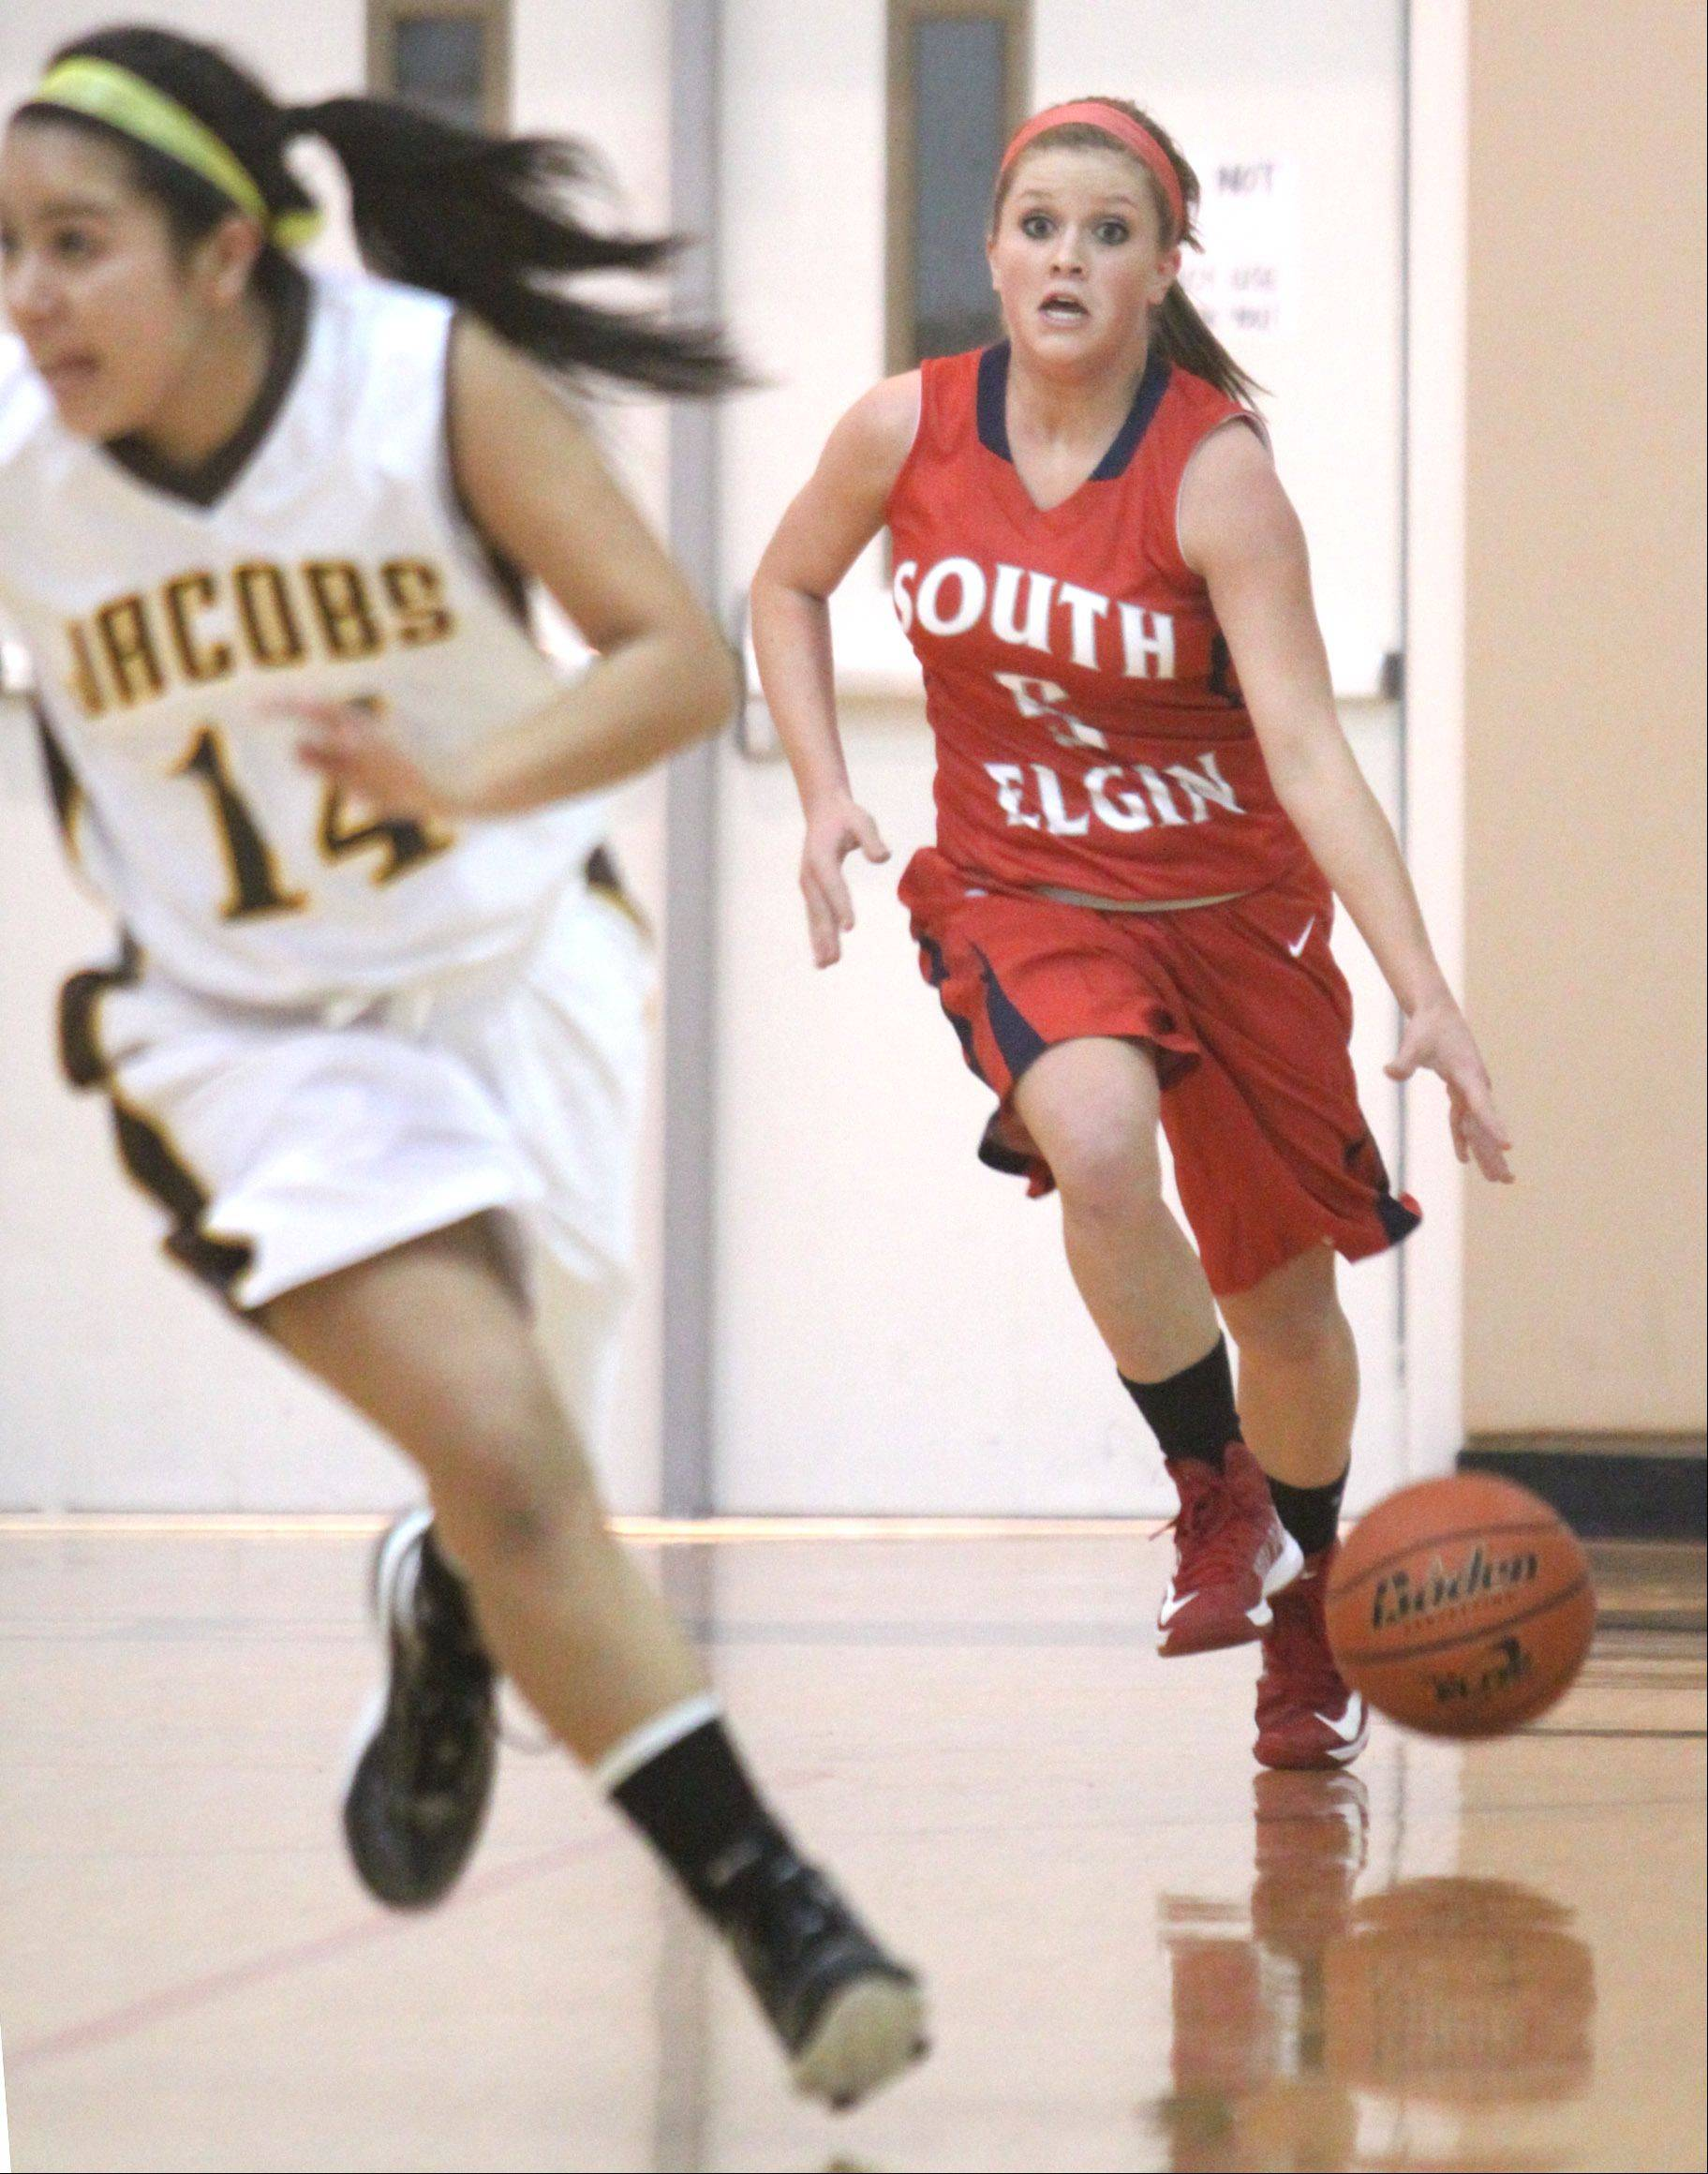 Jacobs' Nicky Chapa, left, motors up court as South Elgin's Anna Tracy looks for an open teammate on a fast break in Algonquin Tuesday night.